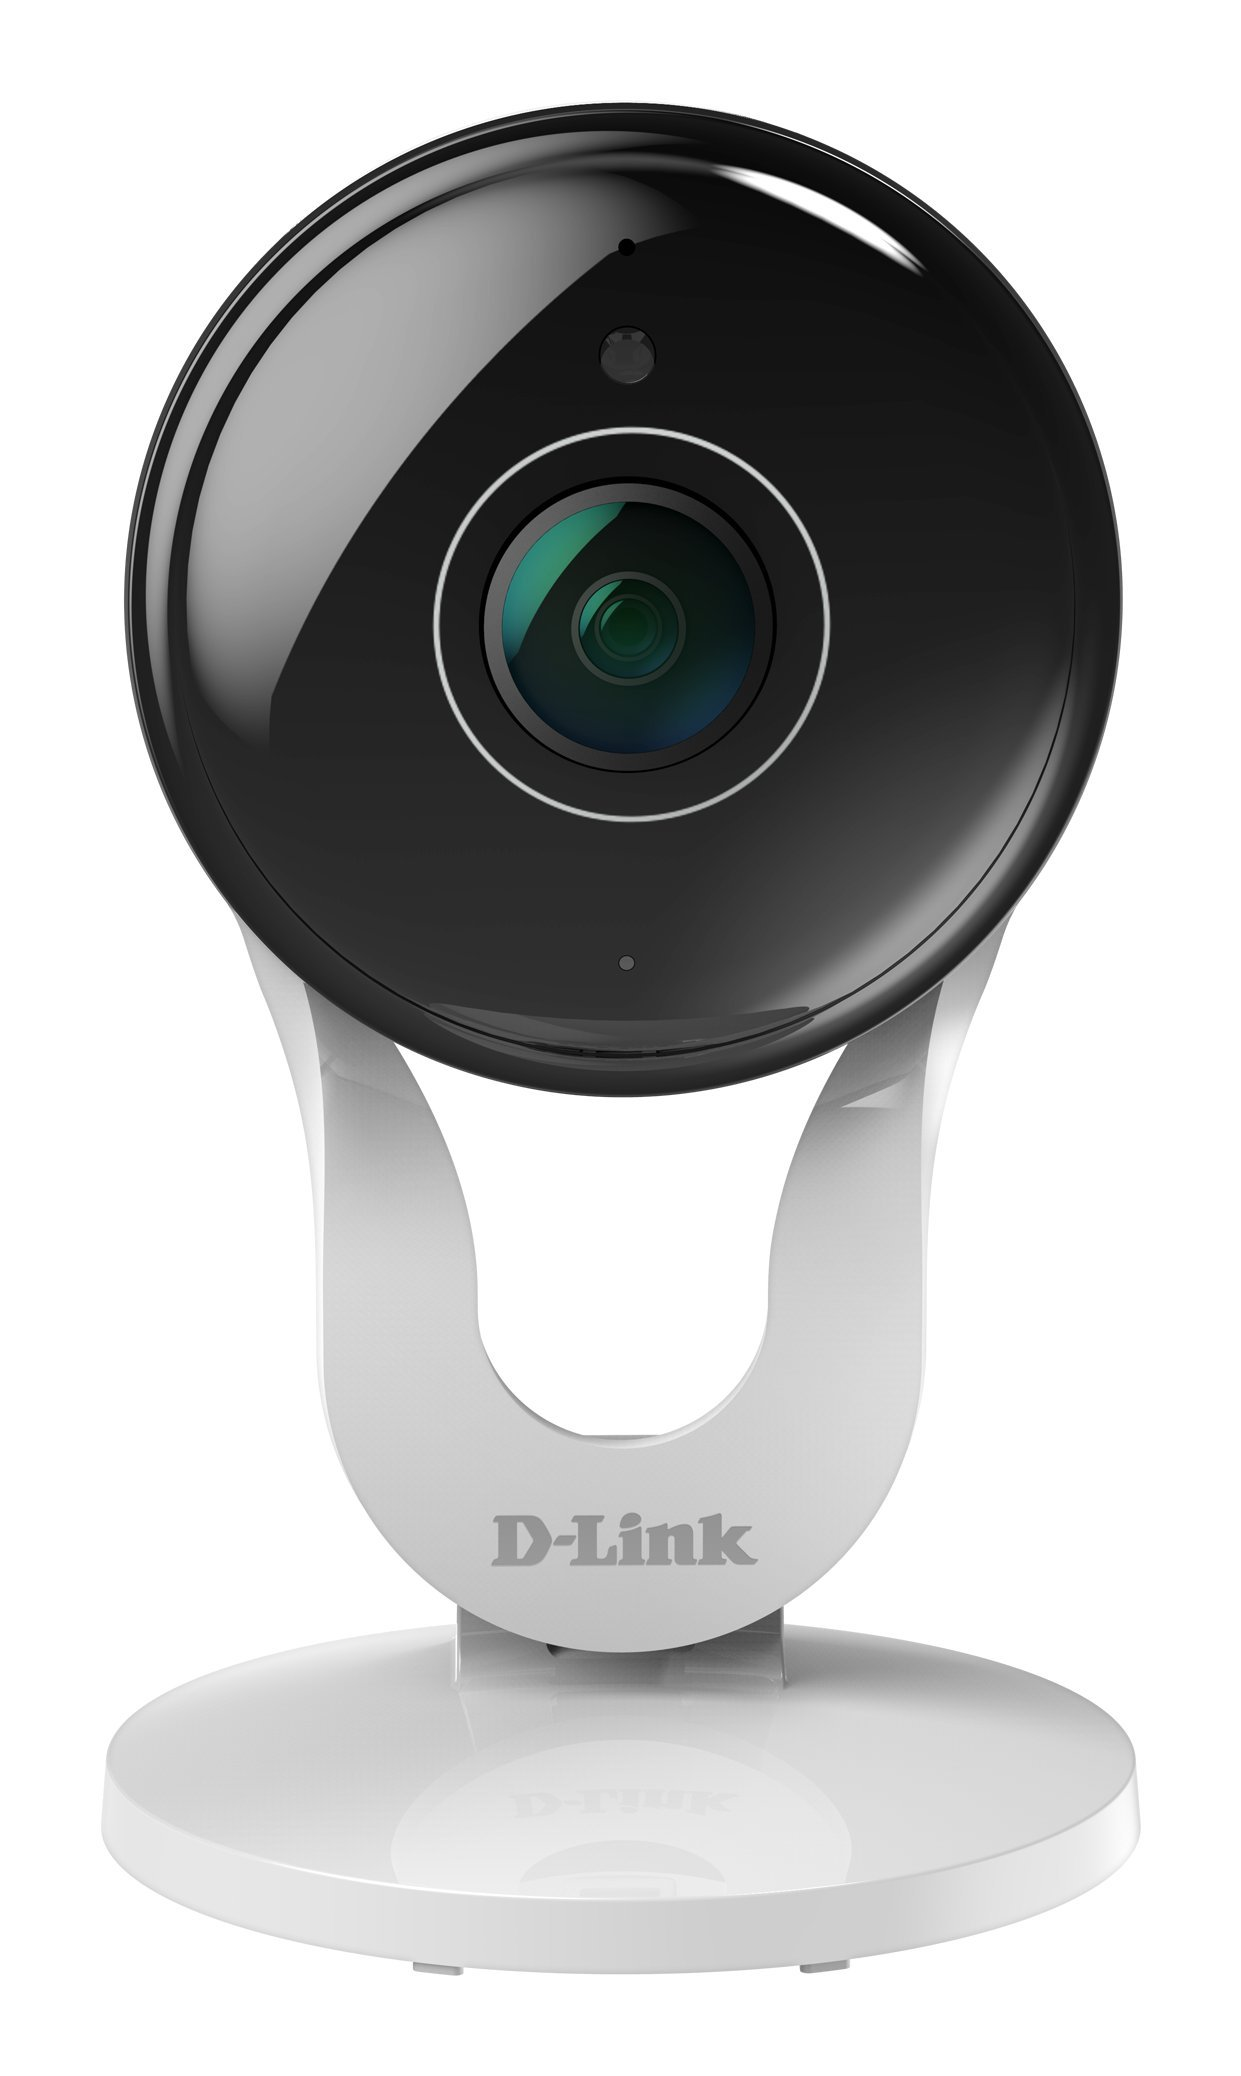 D-Link Indoor WiFi Security Camera, HD 1080p, Two-Way Audio, Motion Detection & Night Vision, Works with Alexa & Google Assistant (DCS-8300LH-US)